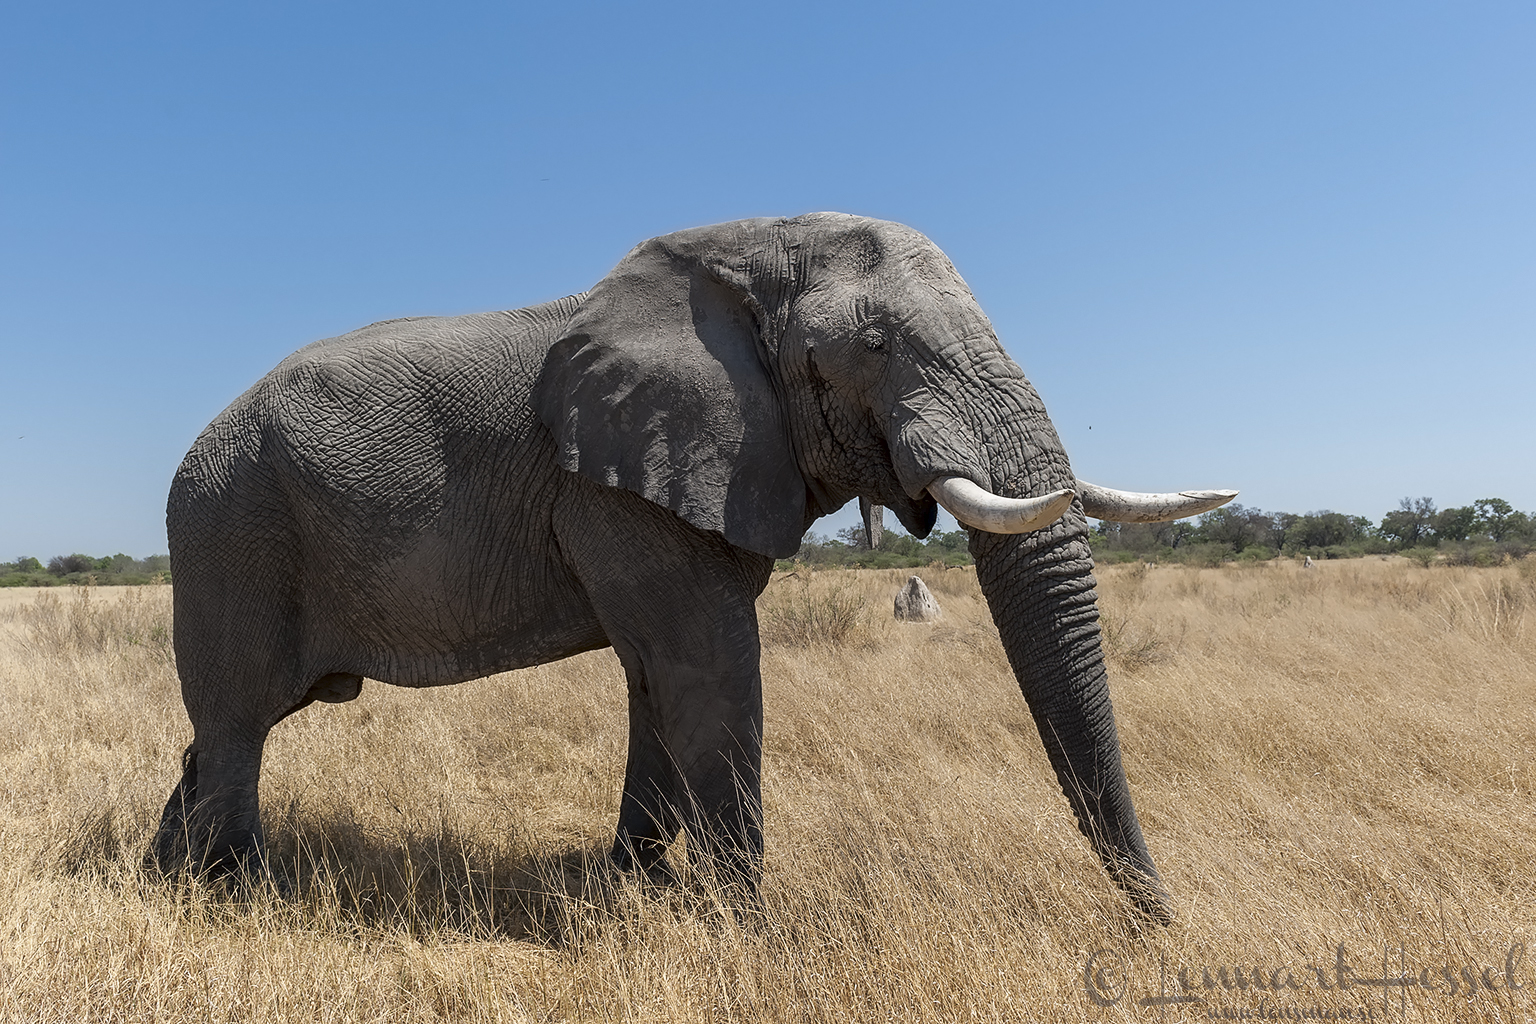 Elephant in Moremi Game Reserve, Botswana - animal